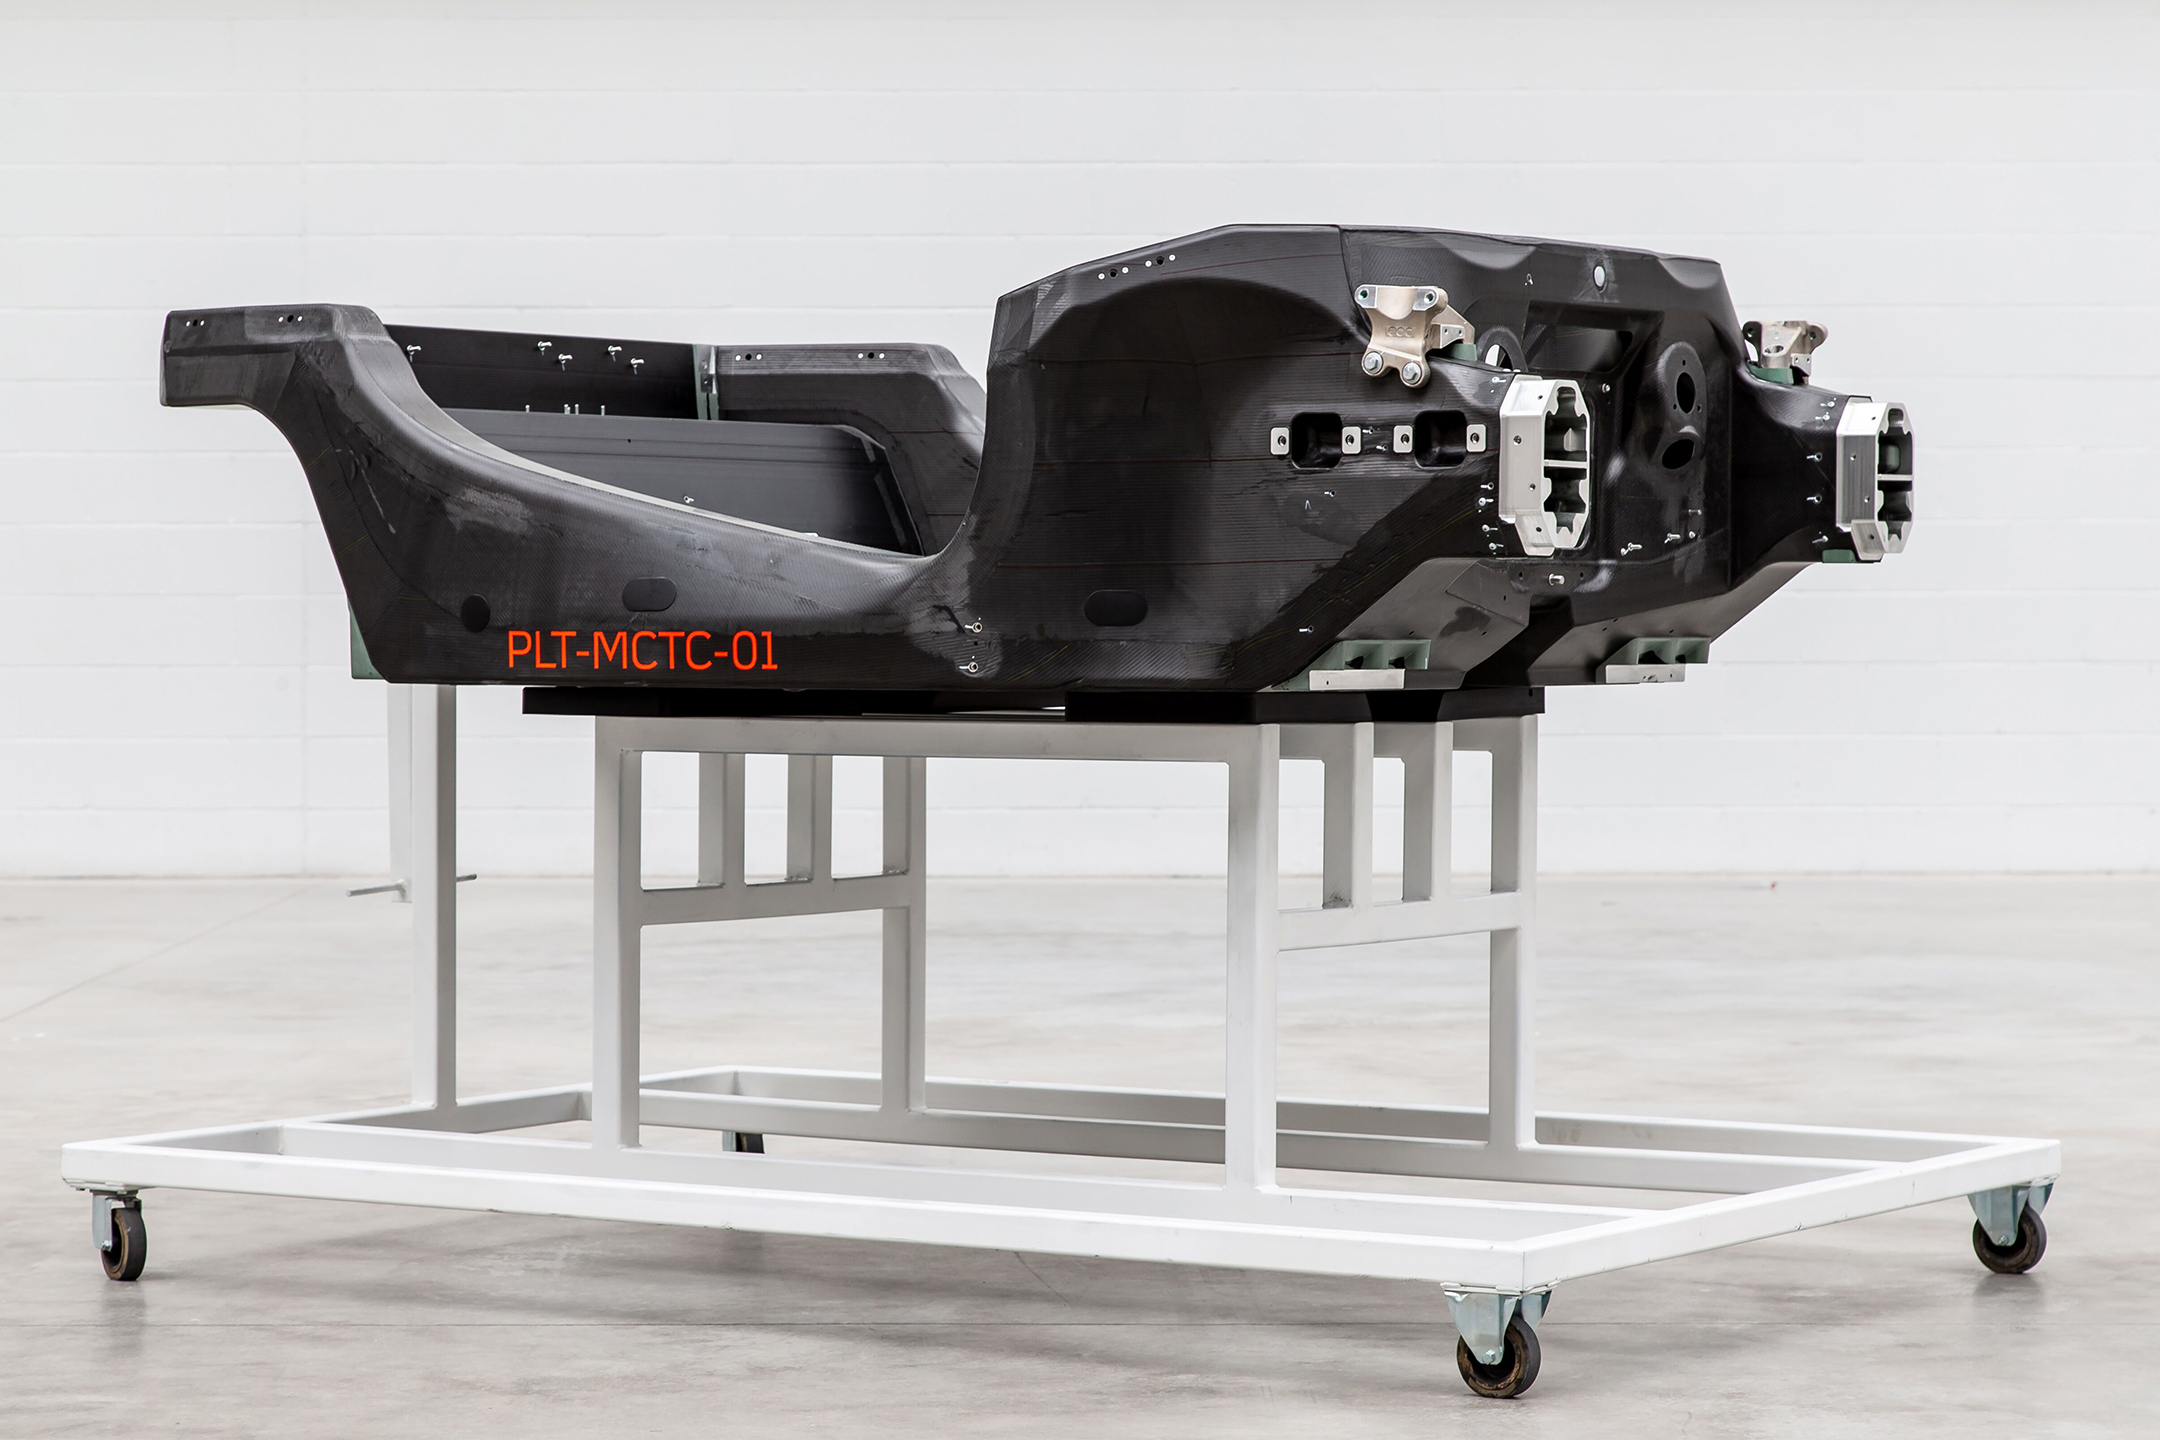 McLaren Automotive - 2019 - prototype carbon fibre chassis